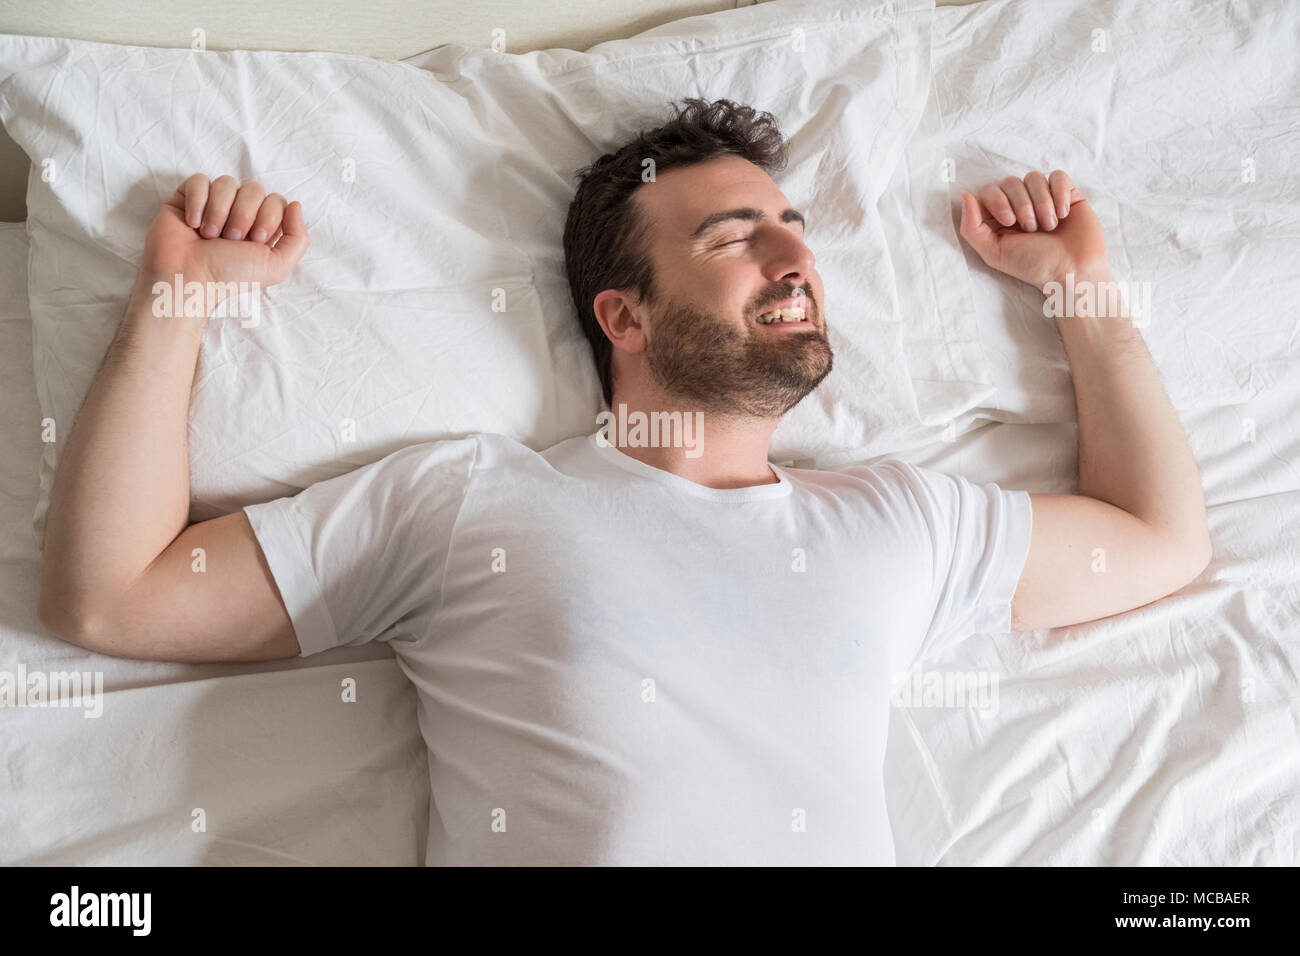 Top view of handsome man smiling while sleeping in his bed at home - Stock Image